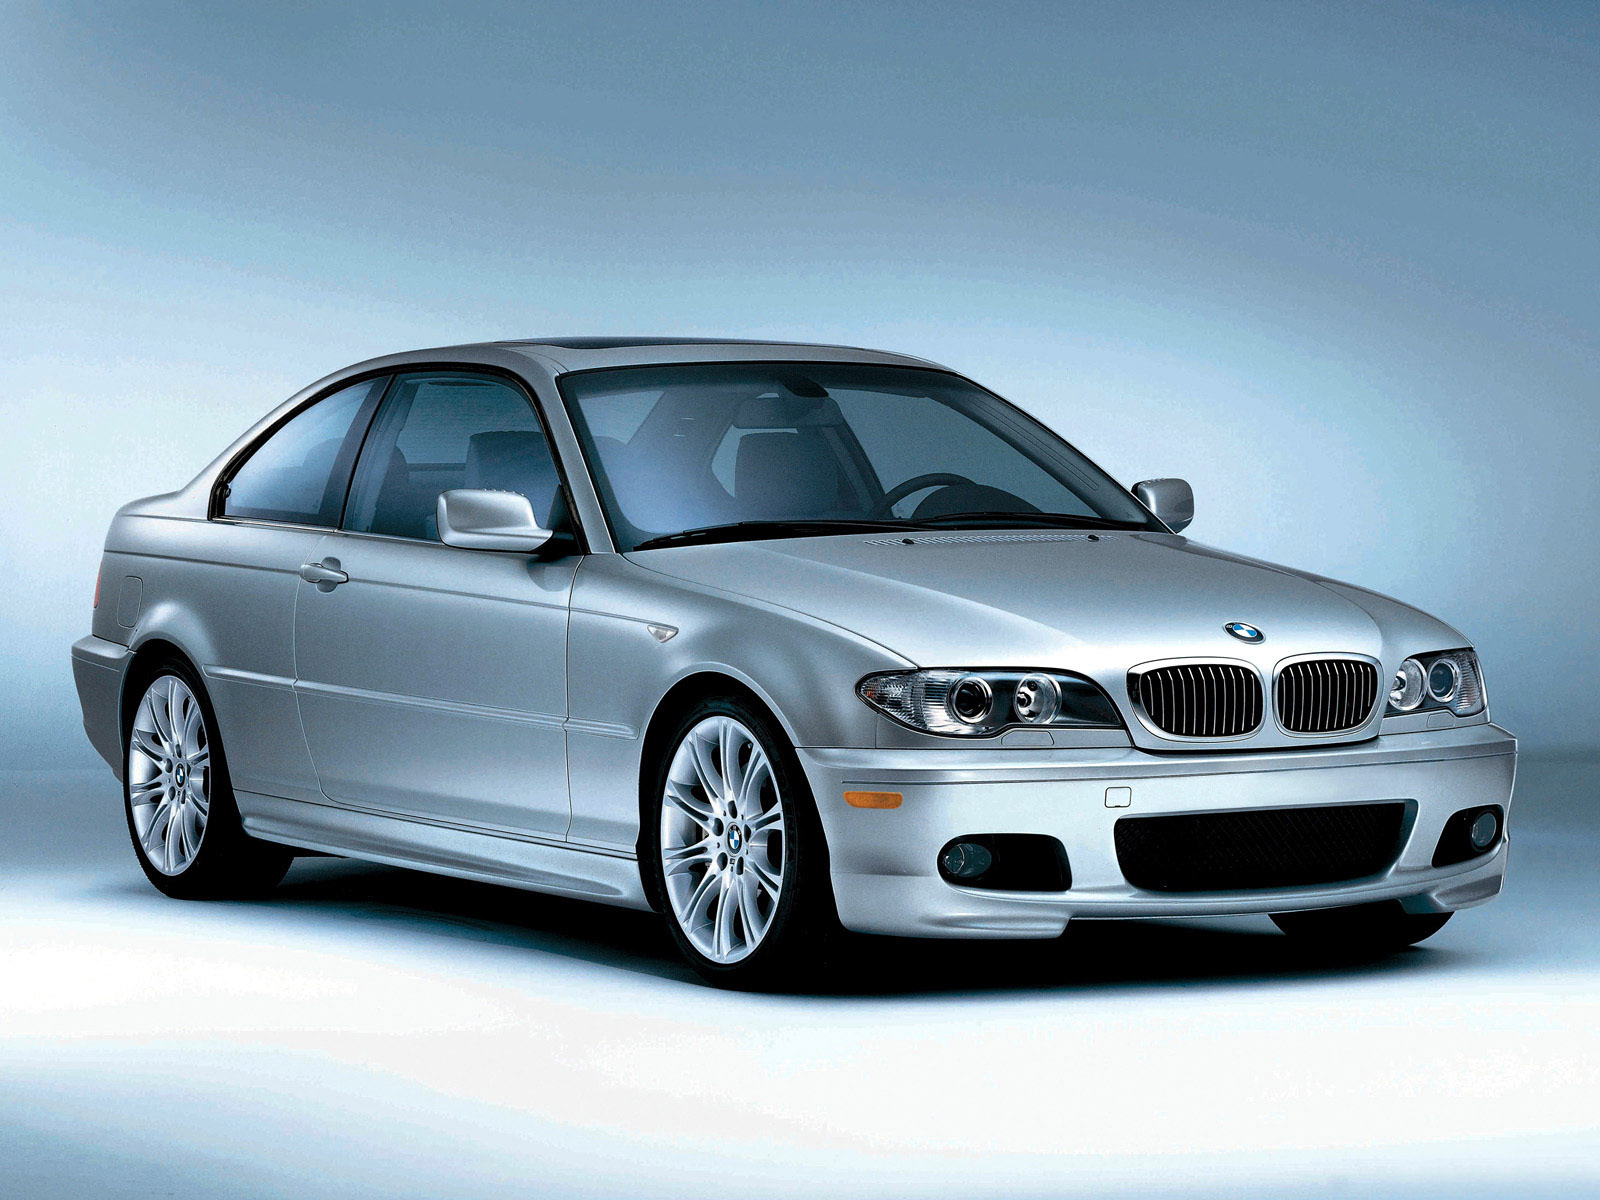 ... BMW 330Ci 2004 photo - 6 ...